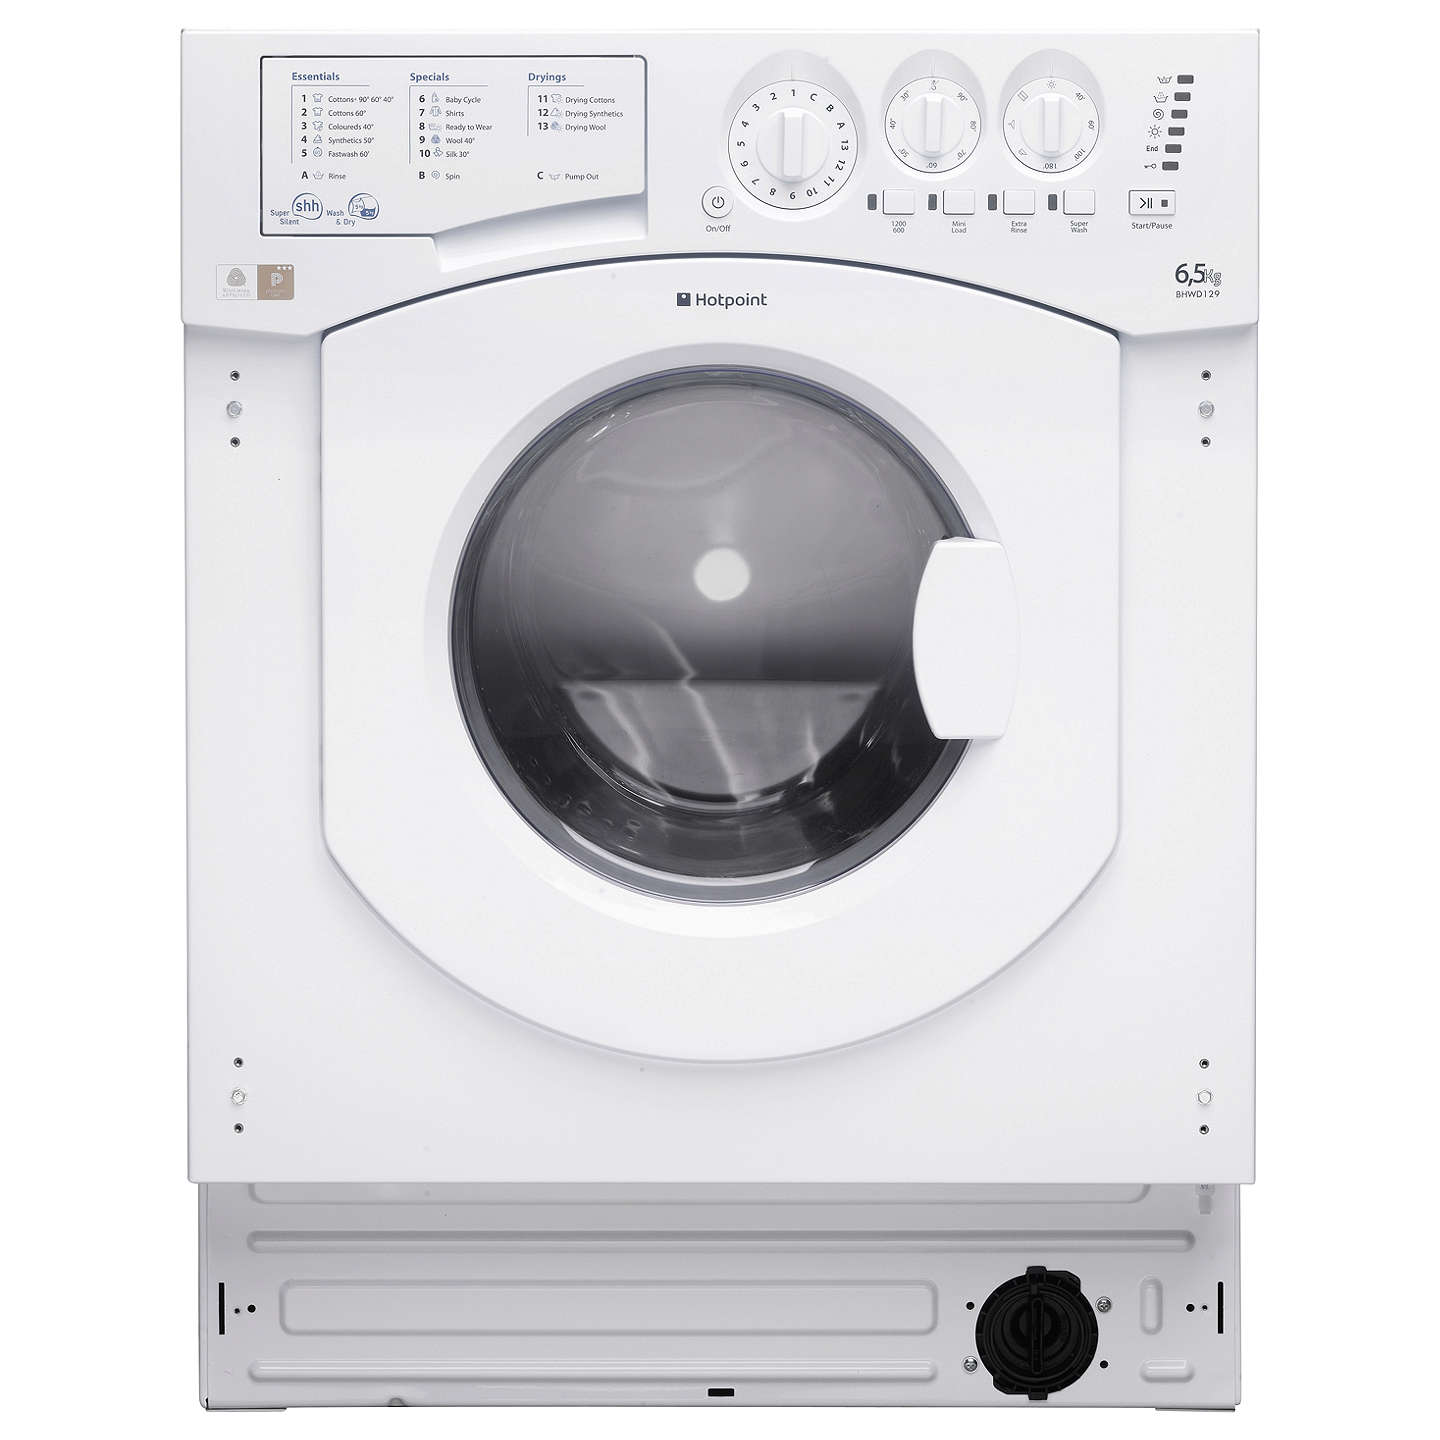 BuyHotpoint BHWD129 Aquarius Integrated Washer Dryer, White Online at johnlewis.com